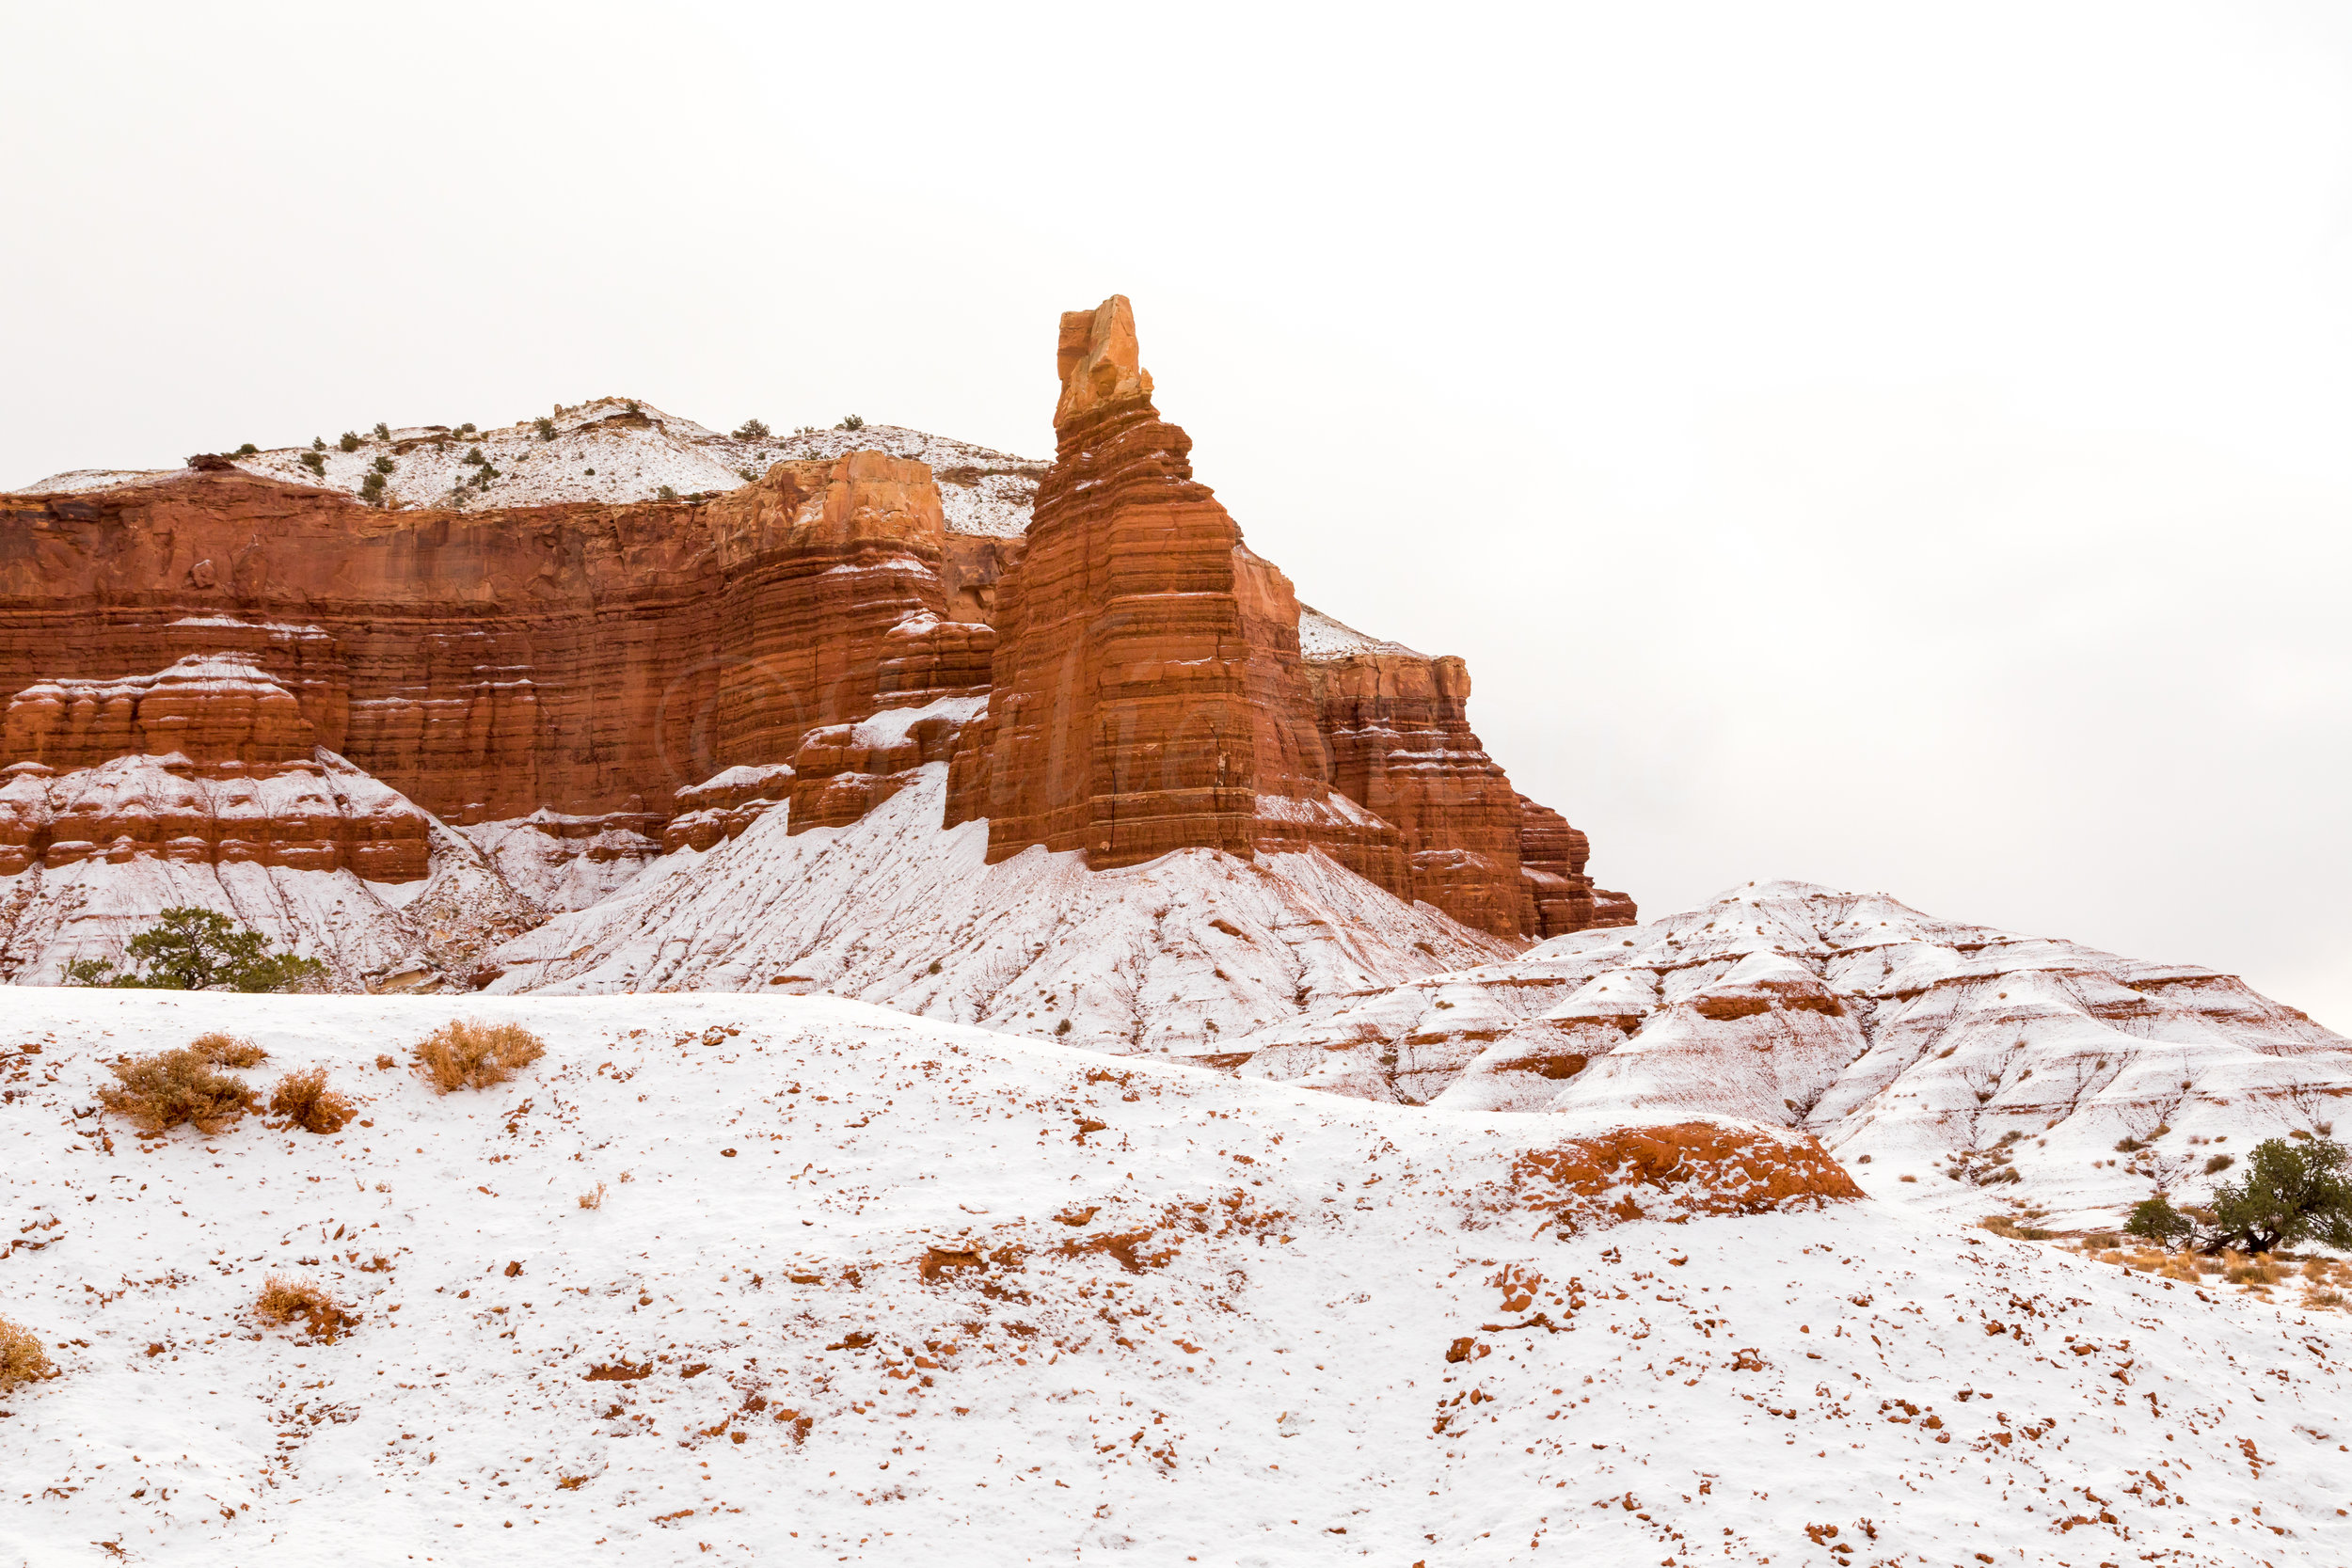 Capitol Reef National Park, Image # 2362